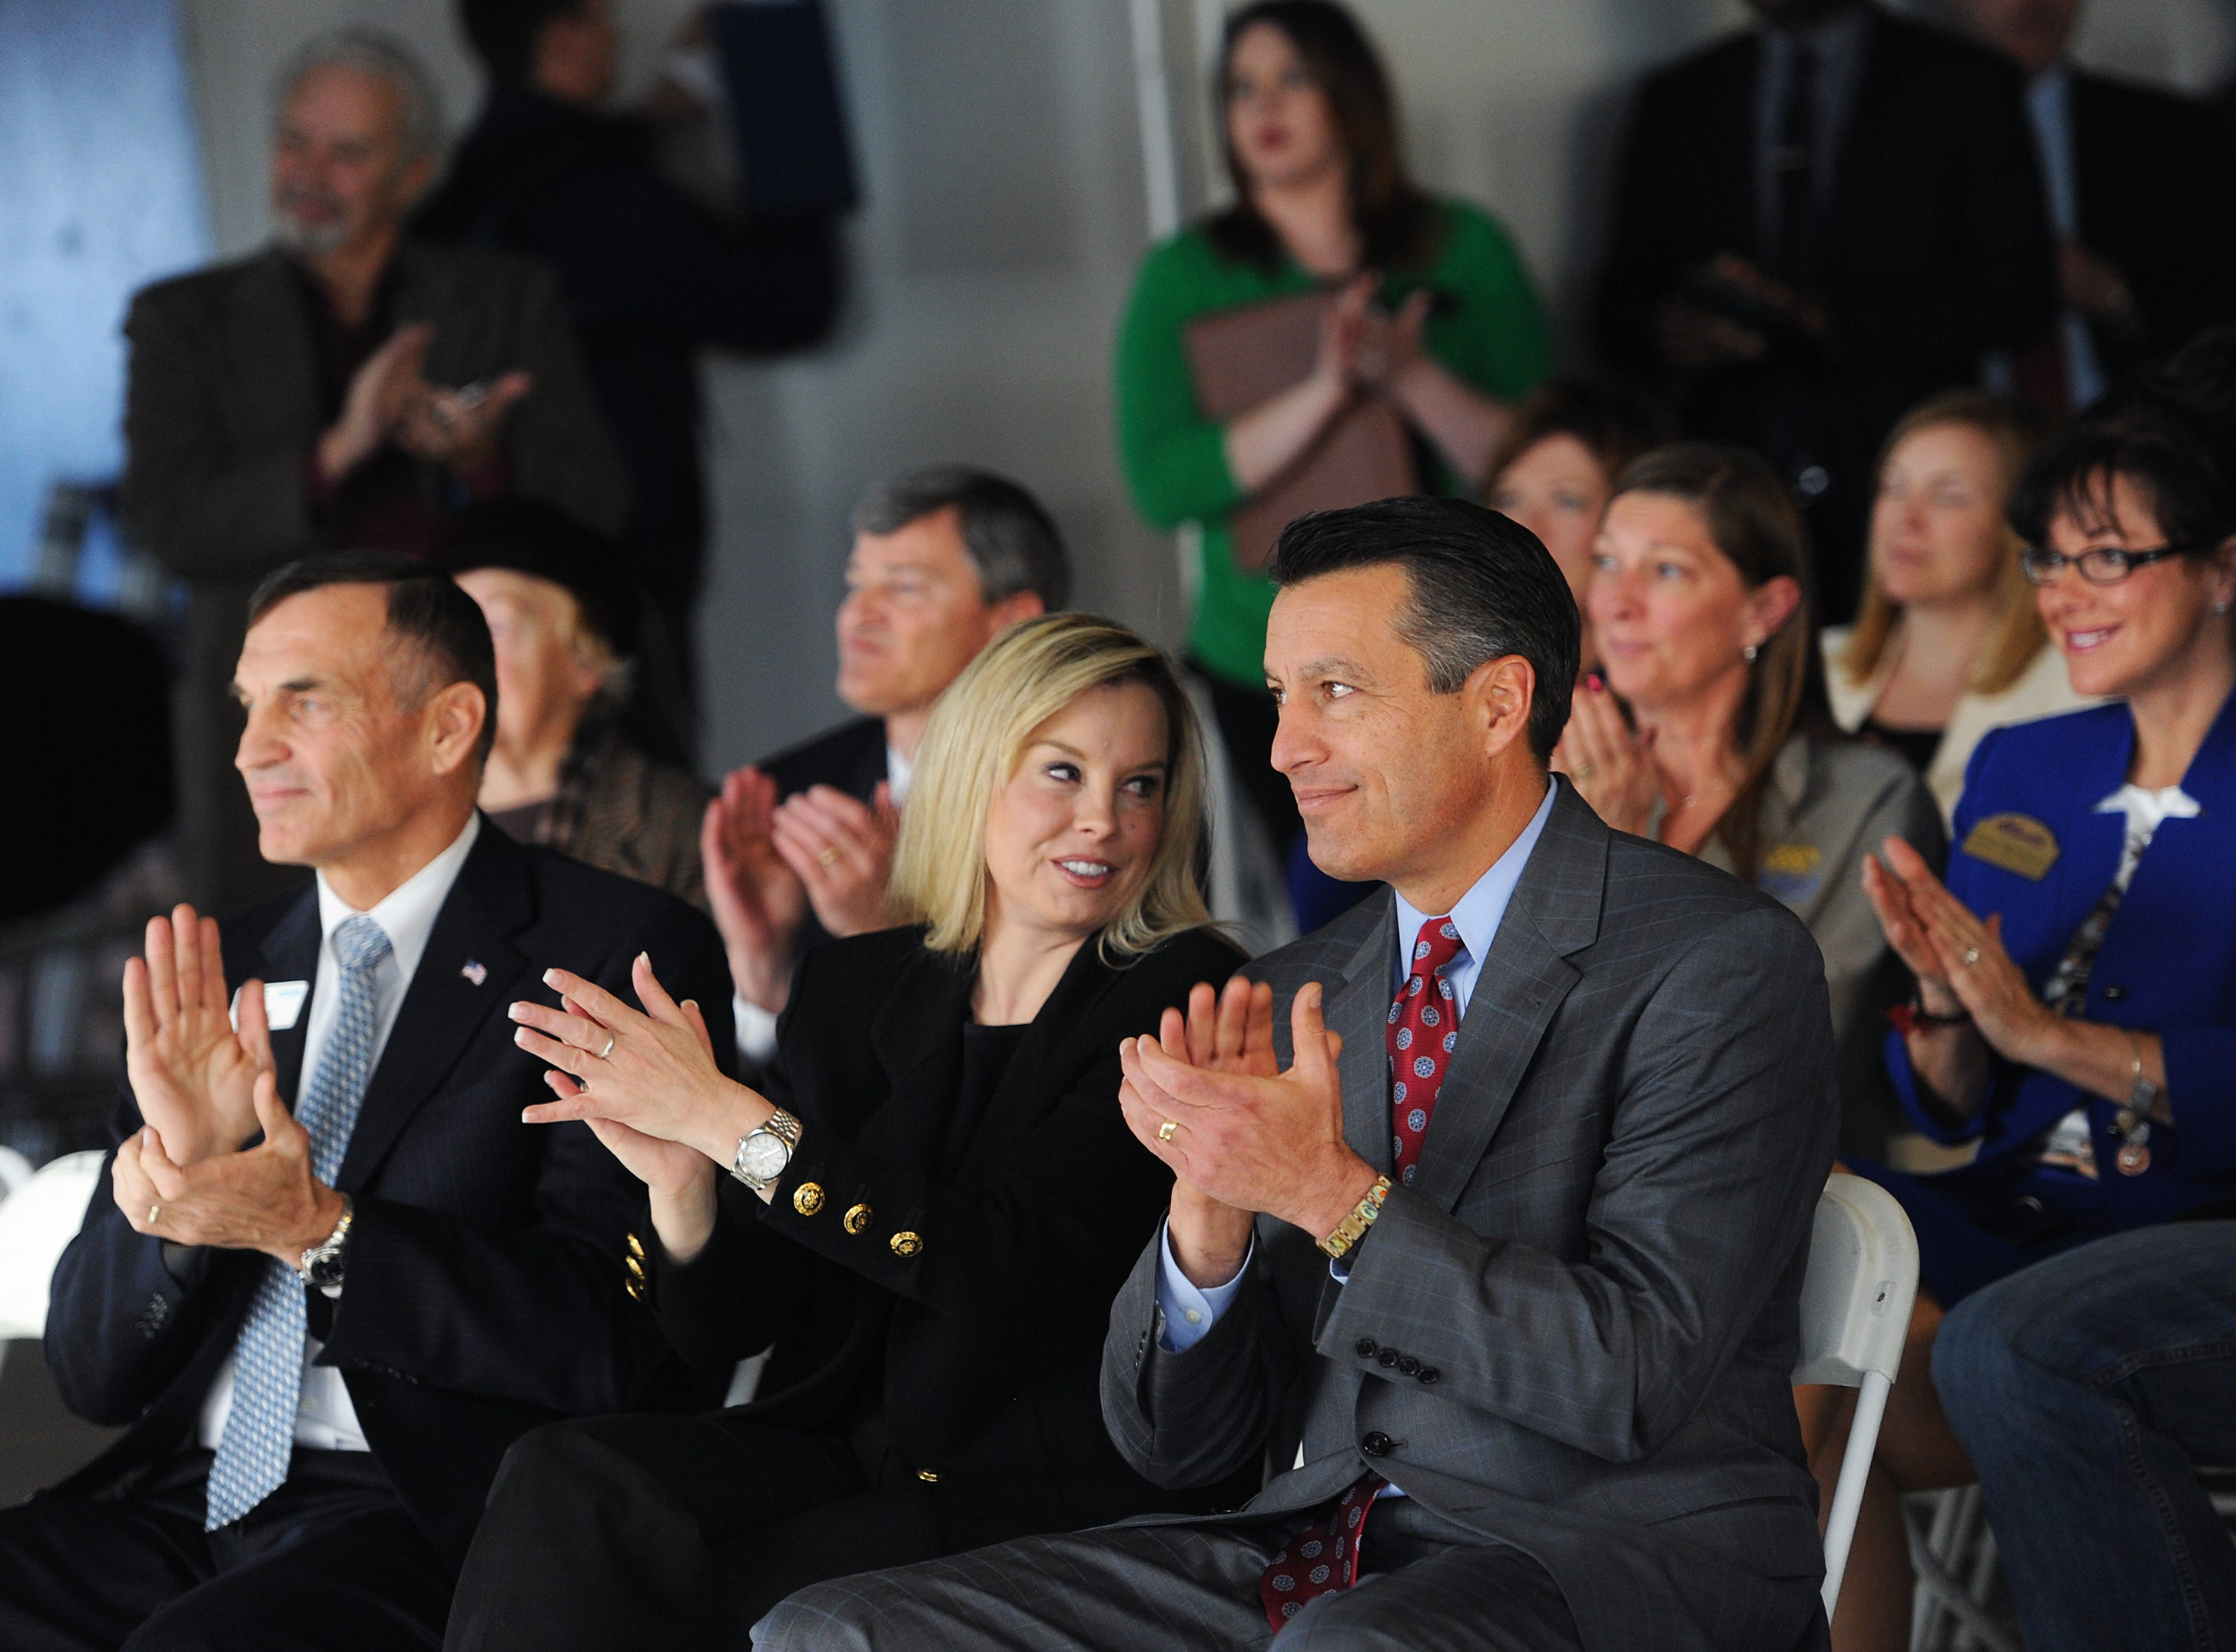 Reno Mayor Hillary Schieve, middle, and Nevada Governor Brian Sandoval applaud during an EDAWN press conference announcing Clear Capital's move from Truckee to downtown Reno at Park Center Tower on Jan. 6, 2015. EDAWN President and CEO Mike Kazmierski is seen on the left.